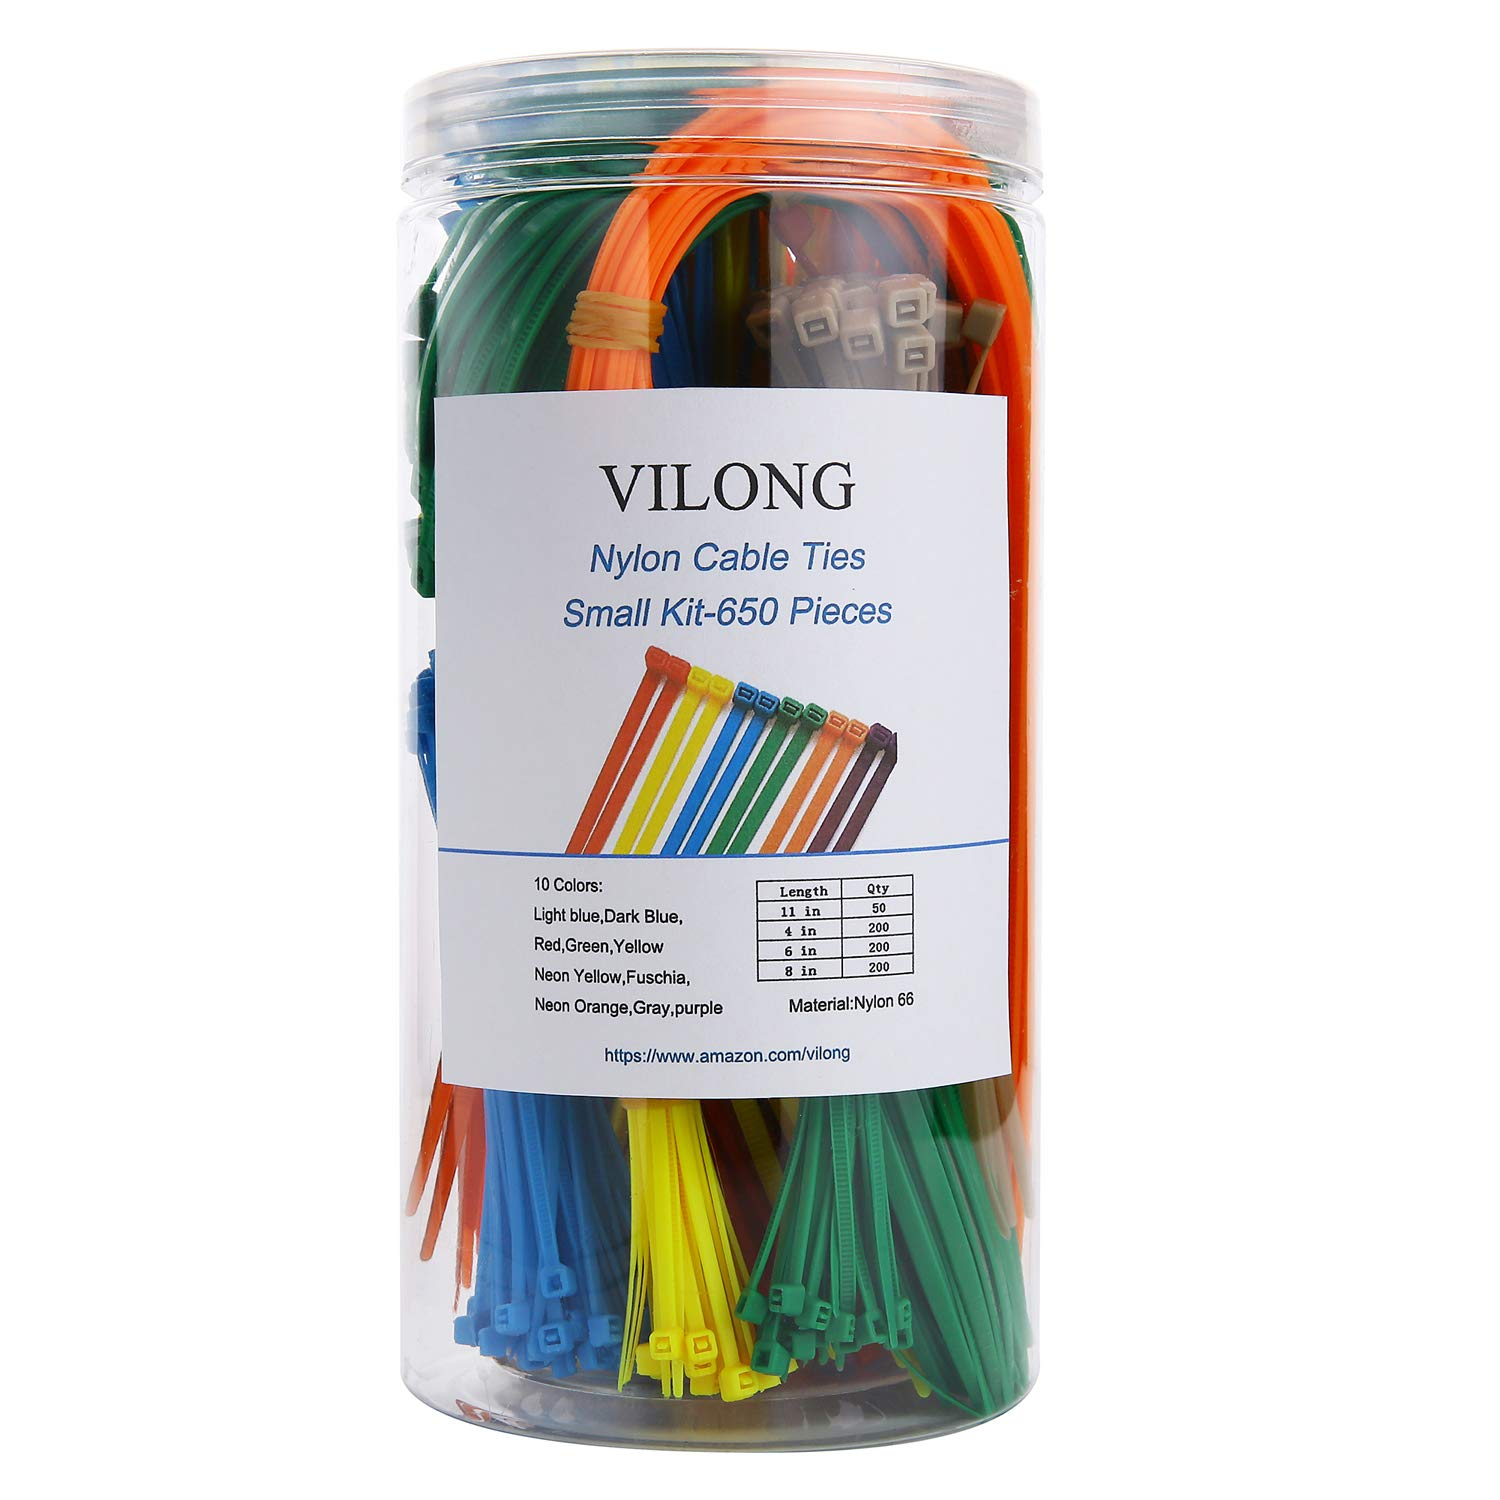 Nylon Zip Cable Tie Kit,Multi-Purpose Self-Locking Cable Ties Wire Tie Wraps - 650 Pieces (Combo Pack)- Multi Color,Assorted Lengths 4'', 6'', 8'', 11'' (45-LB Strength)